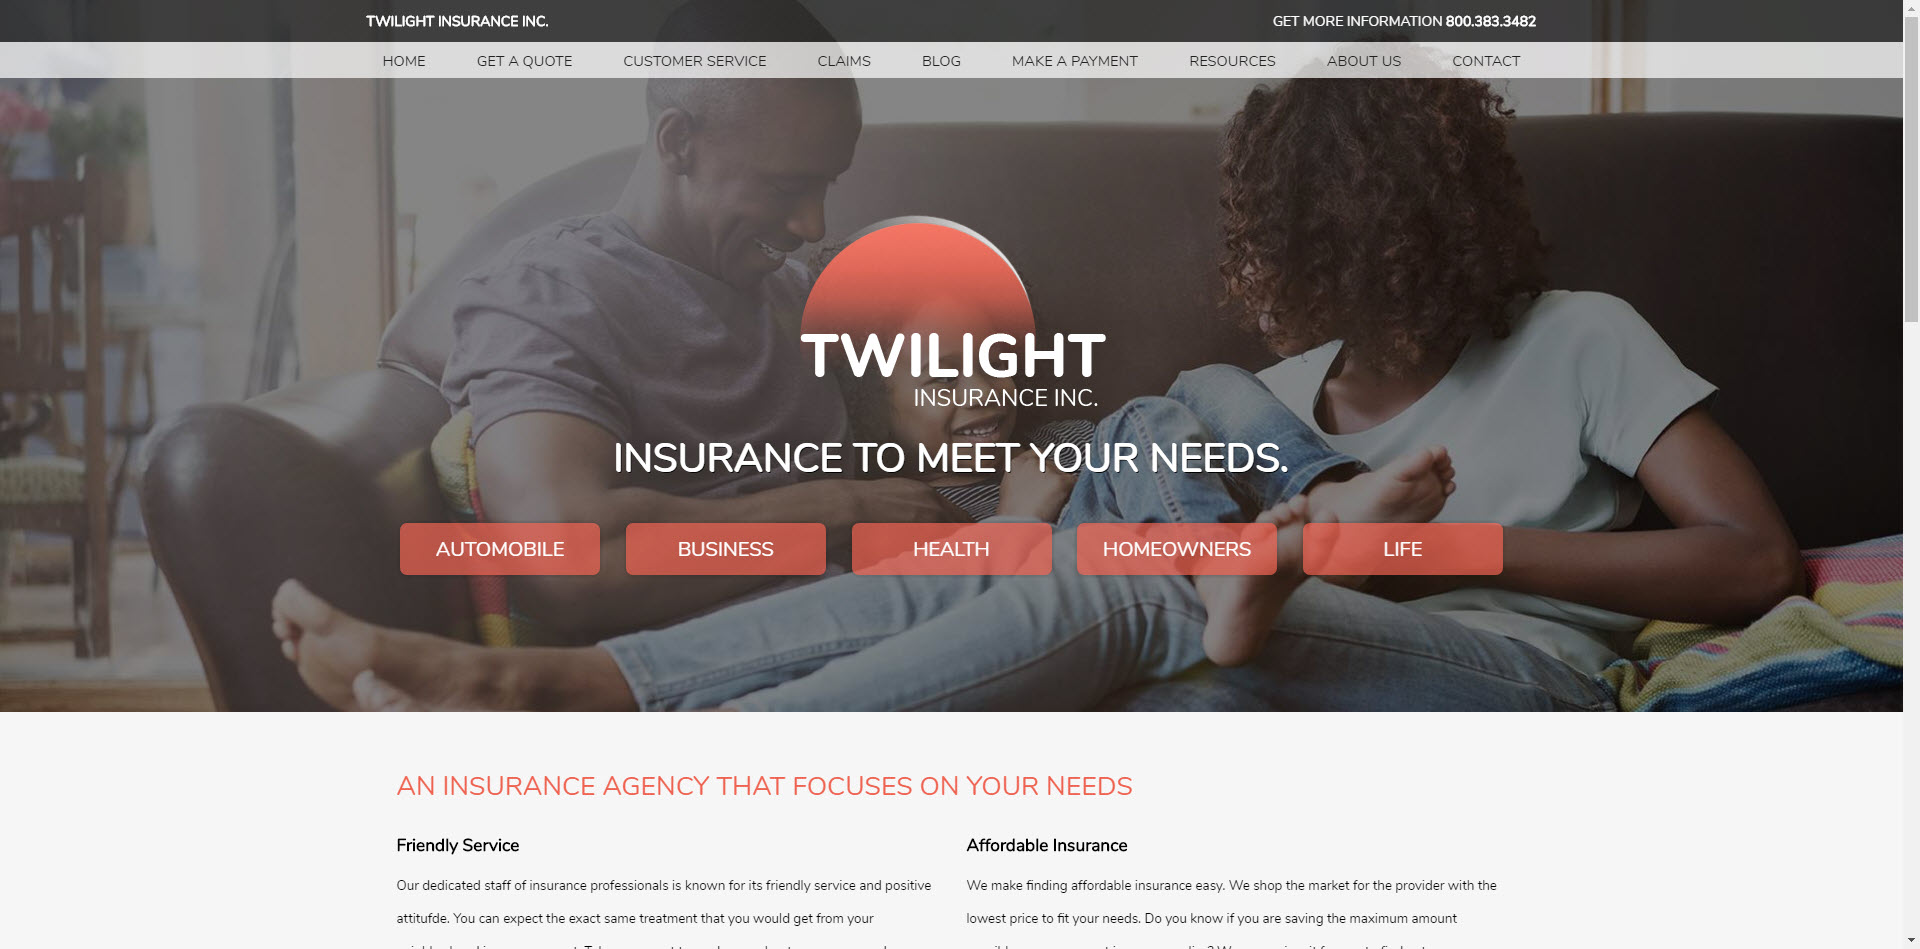 Twilight insurance website builder template